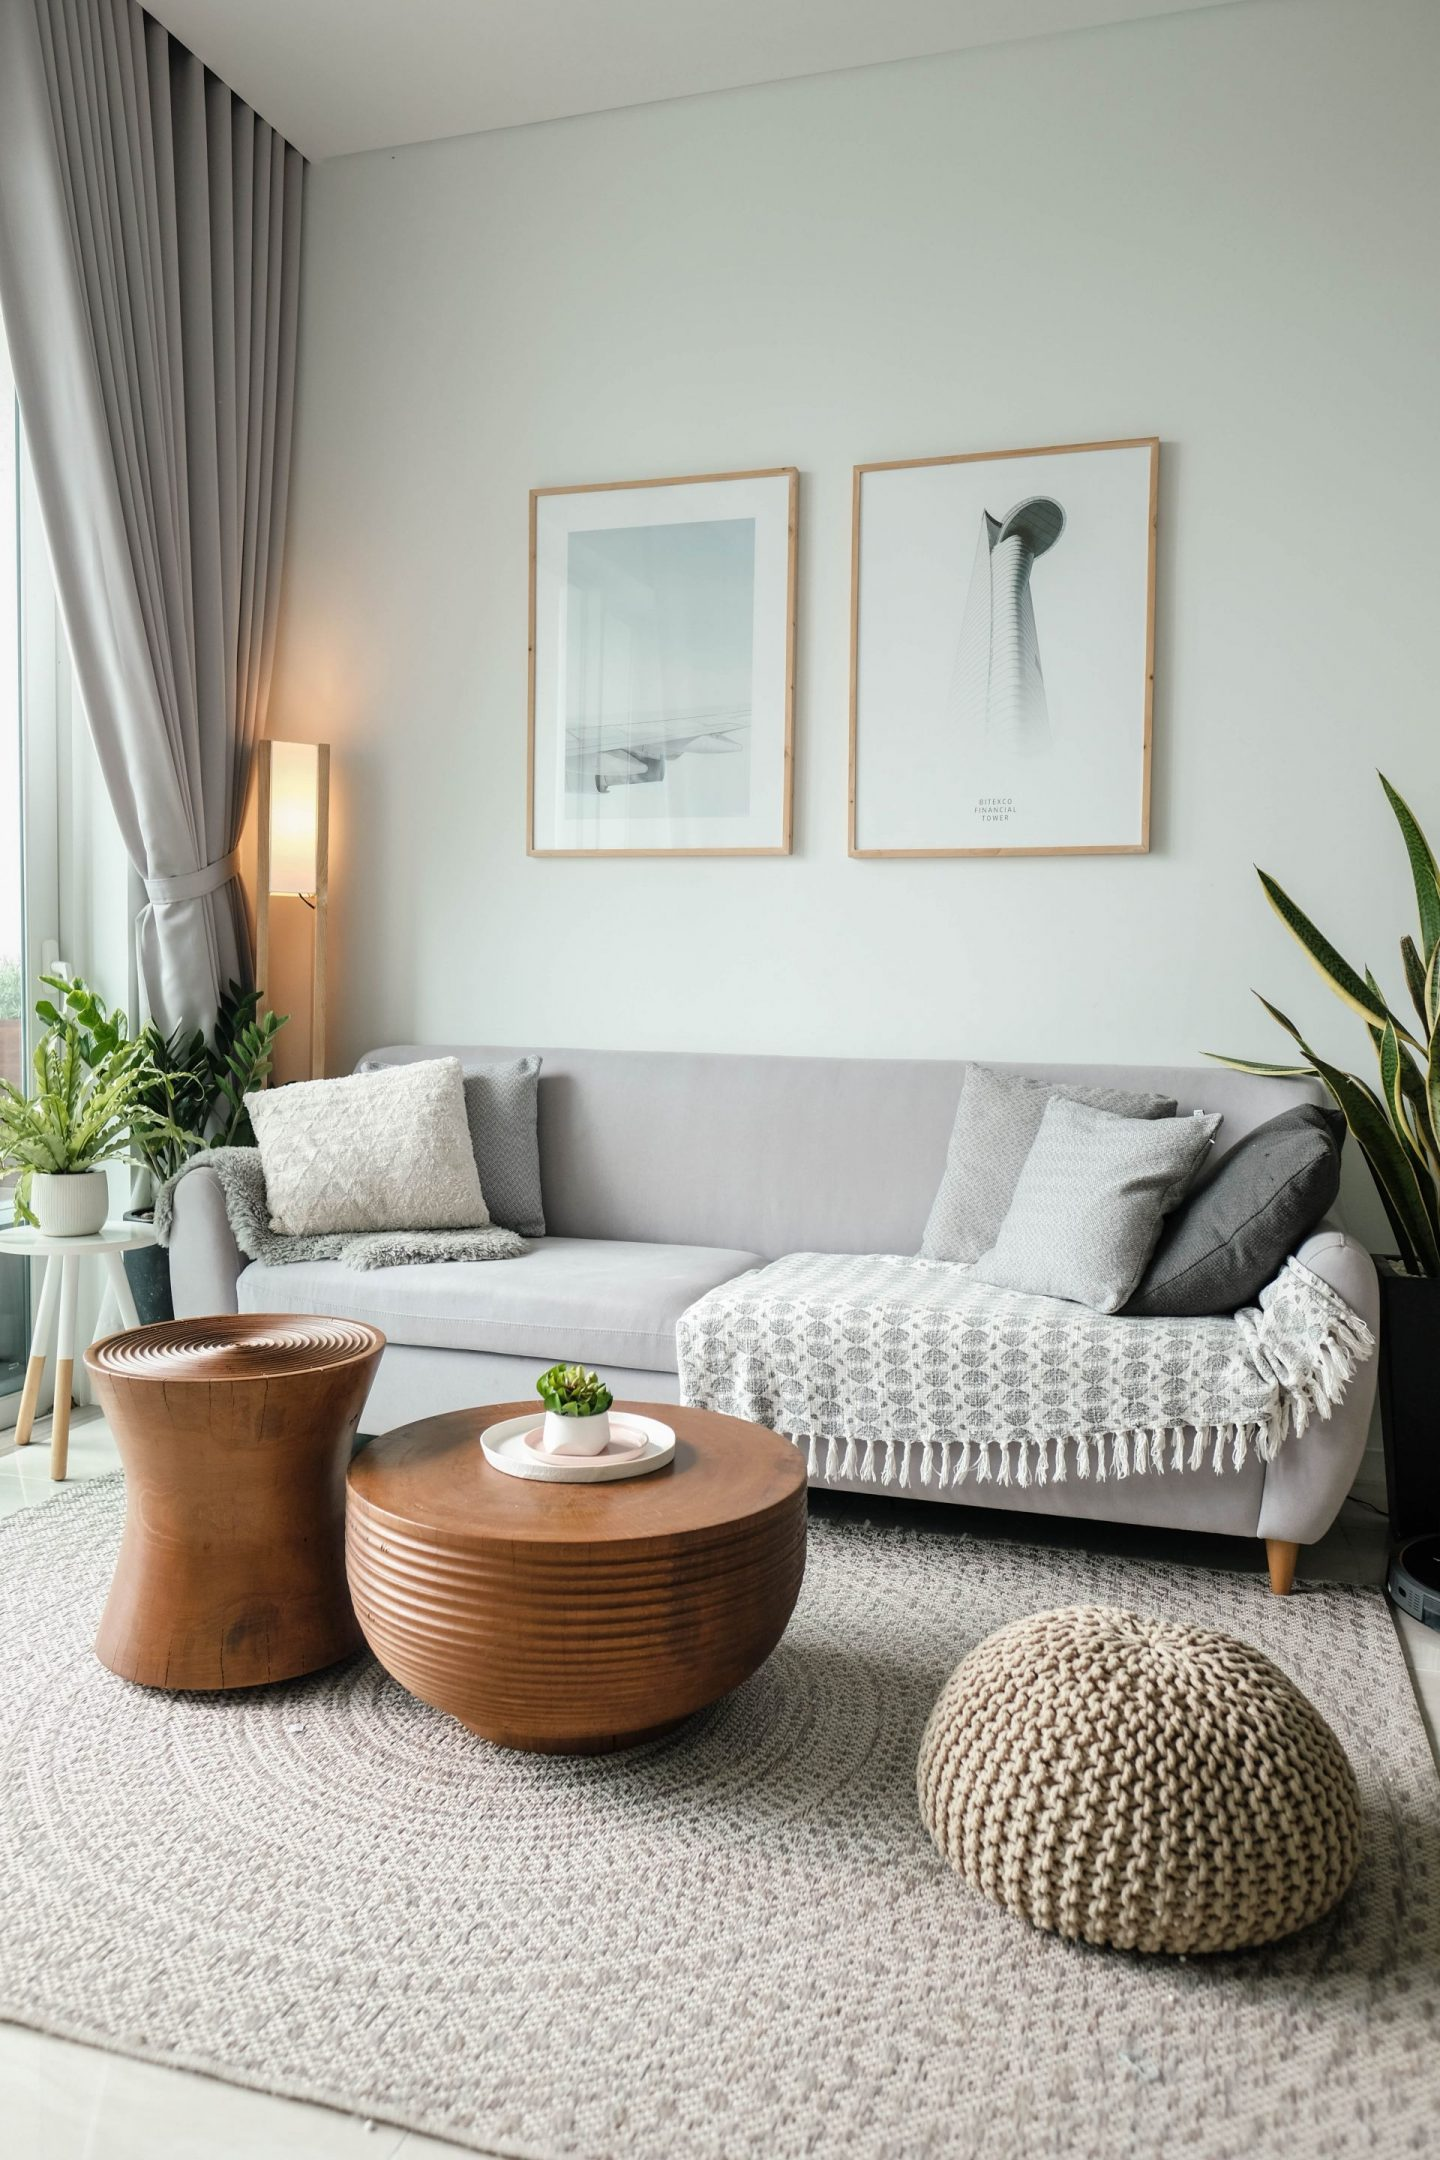 Small Things That Influence the Quality of Your Home